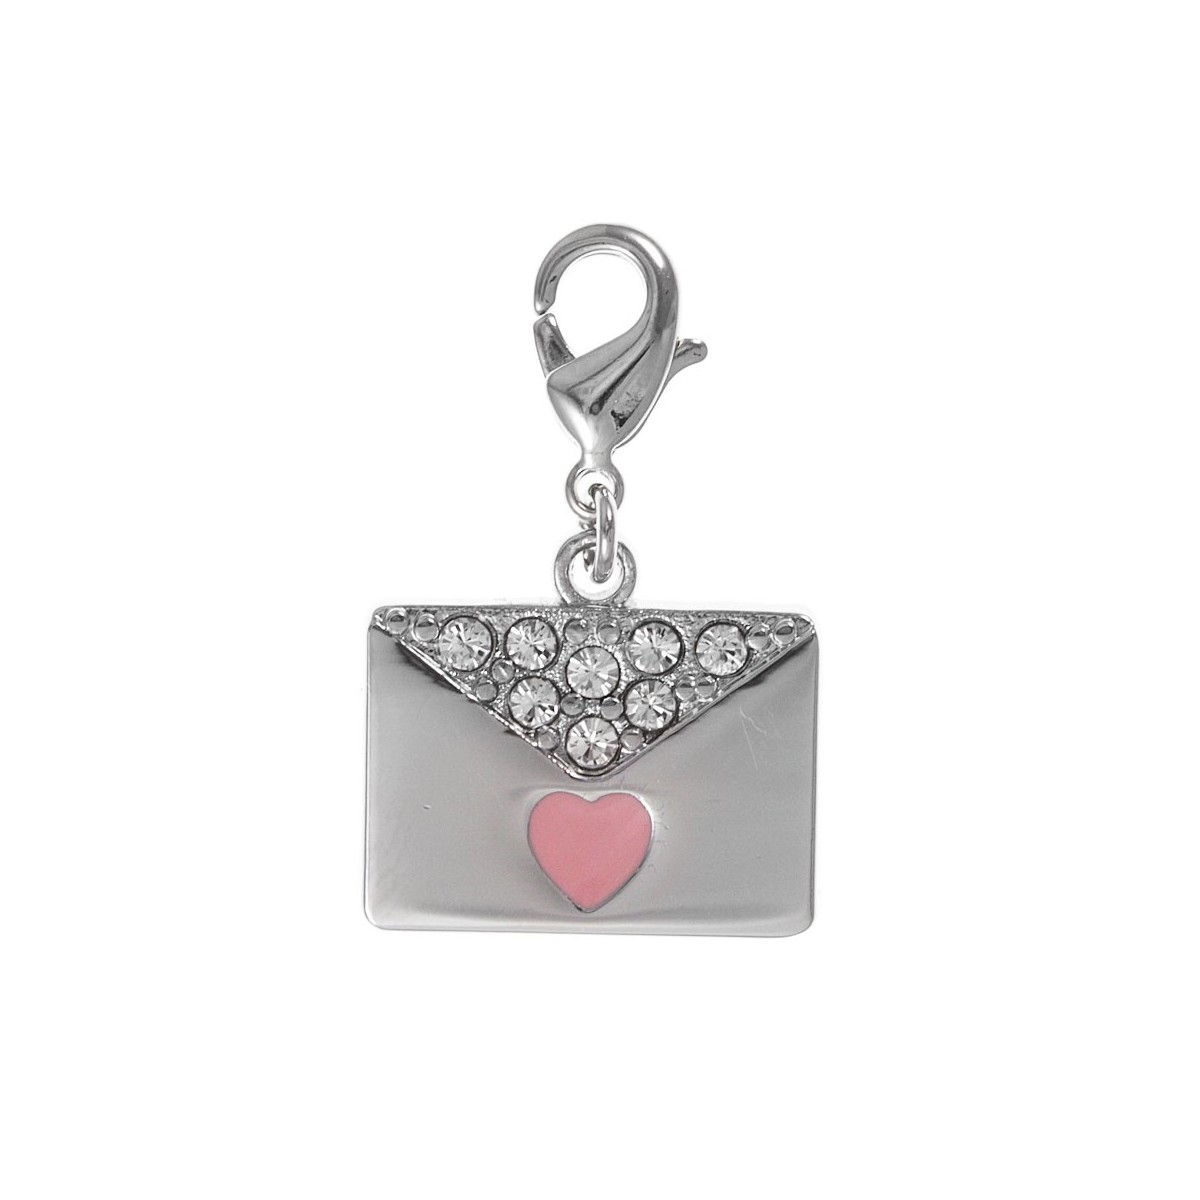 Charm sac pochette coeur rose So Charm